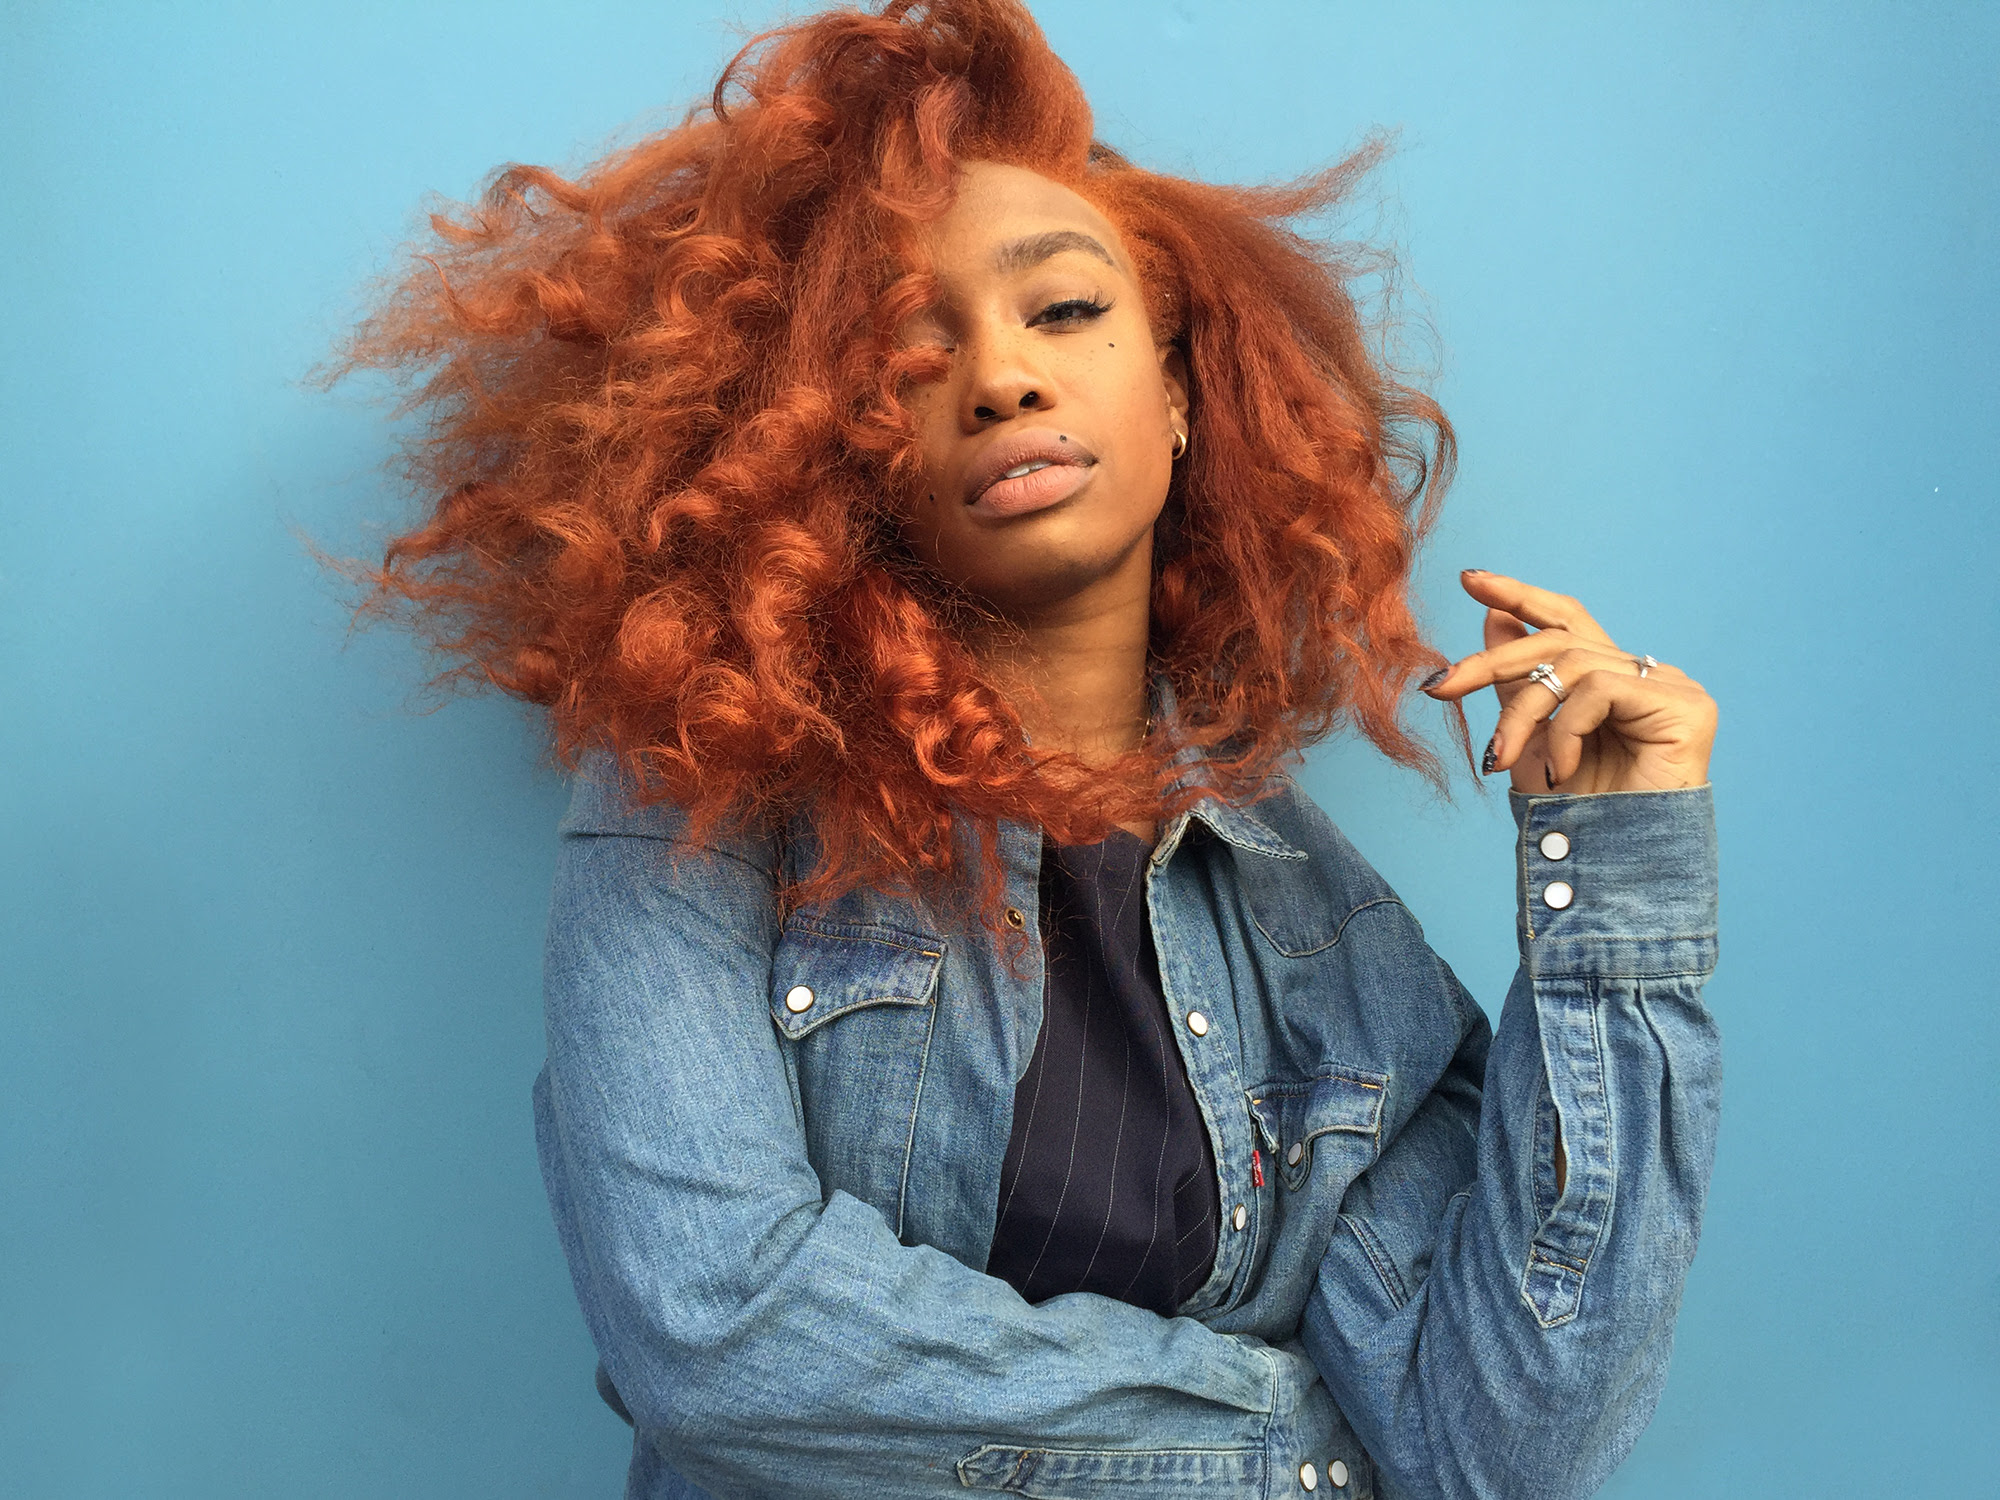 Singer SZA\u2019s New Copper Red Hair and Her SXSW Performance  Vogue